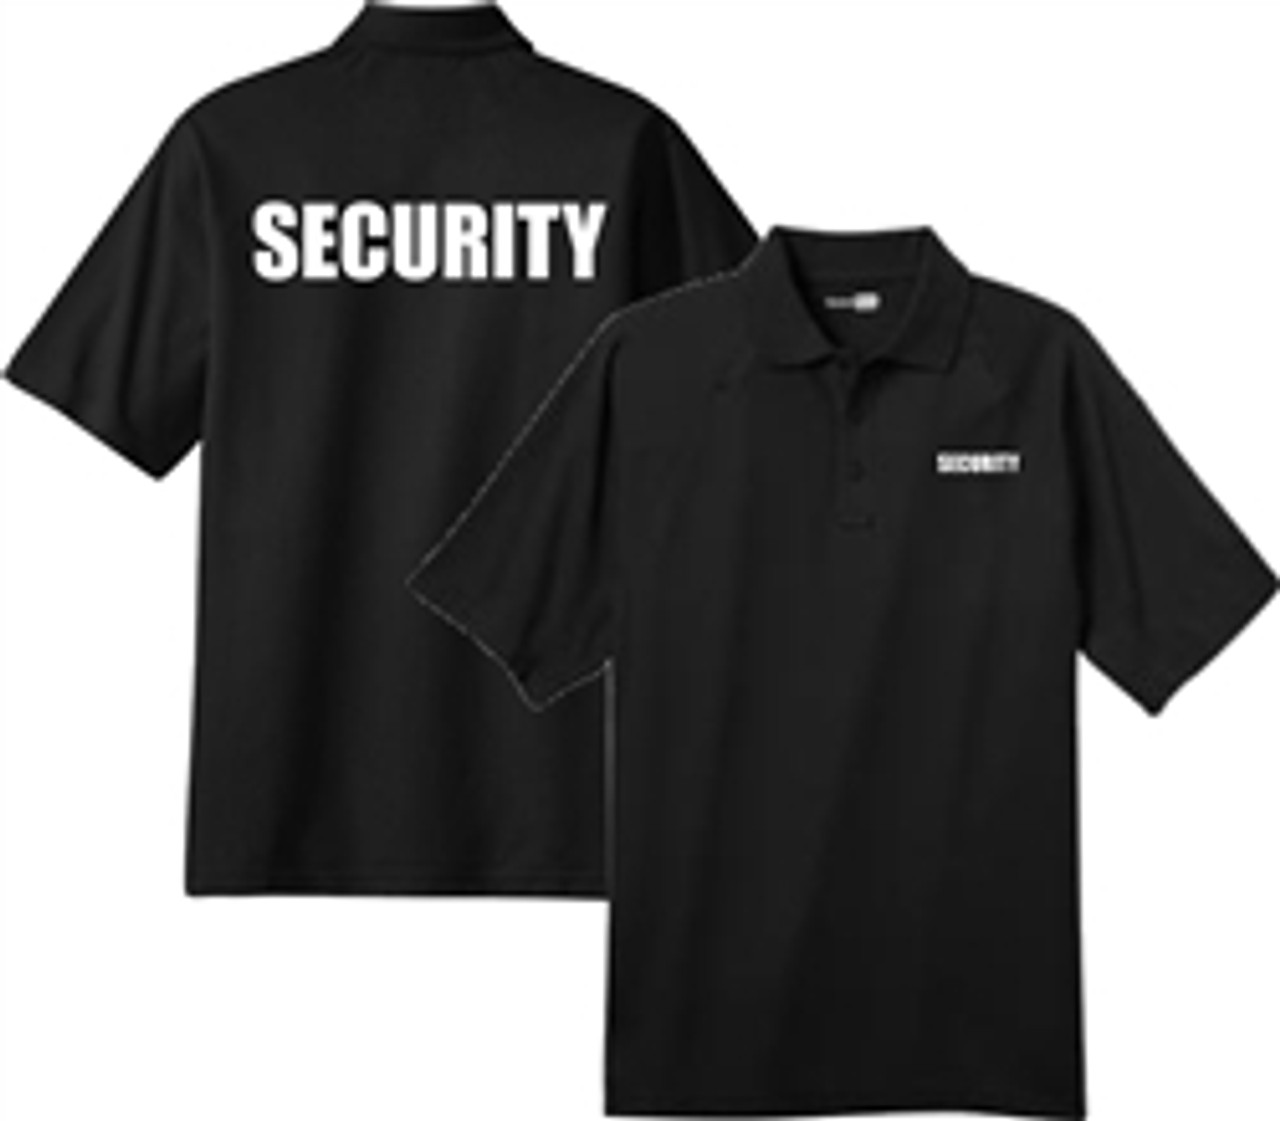 Security - Black Short Sleeve Tactical Polo